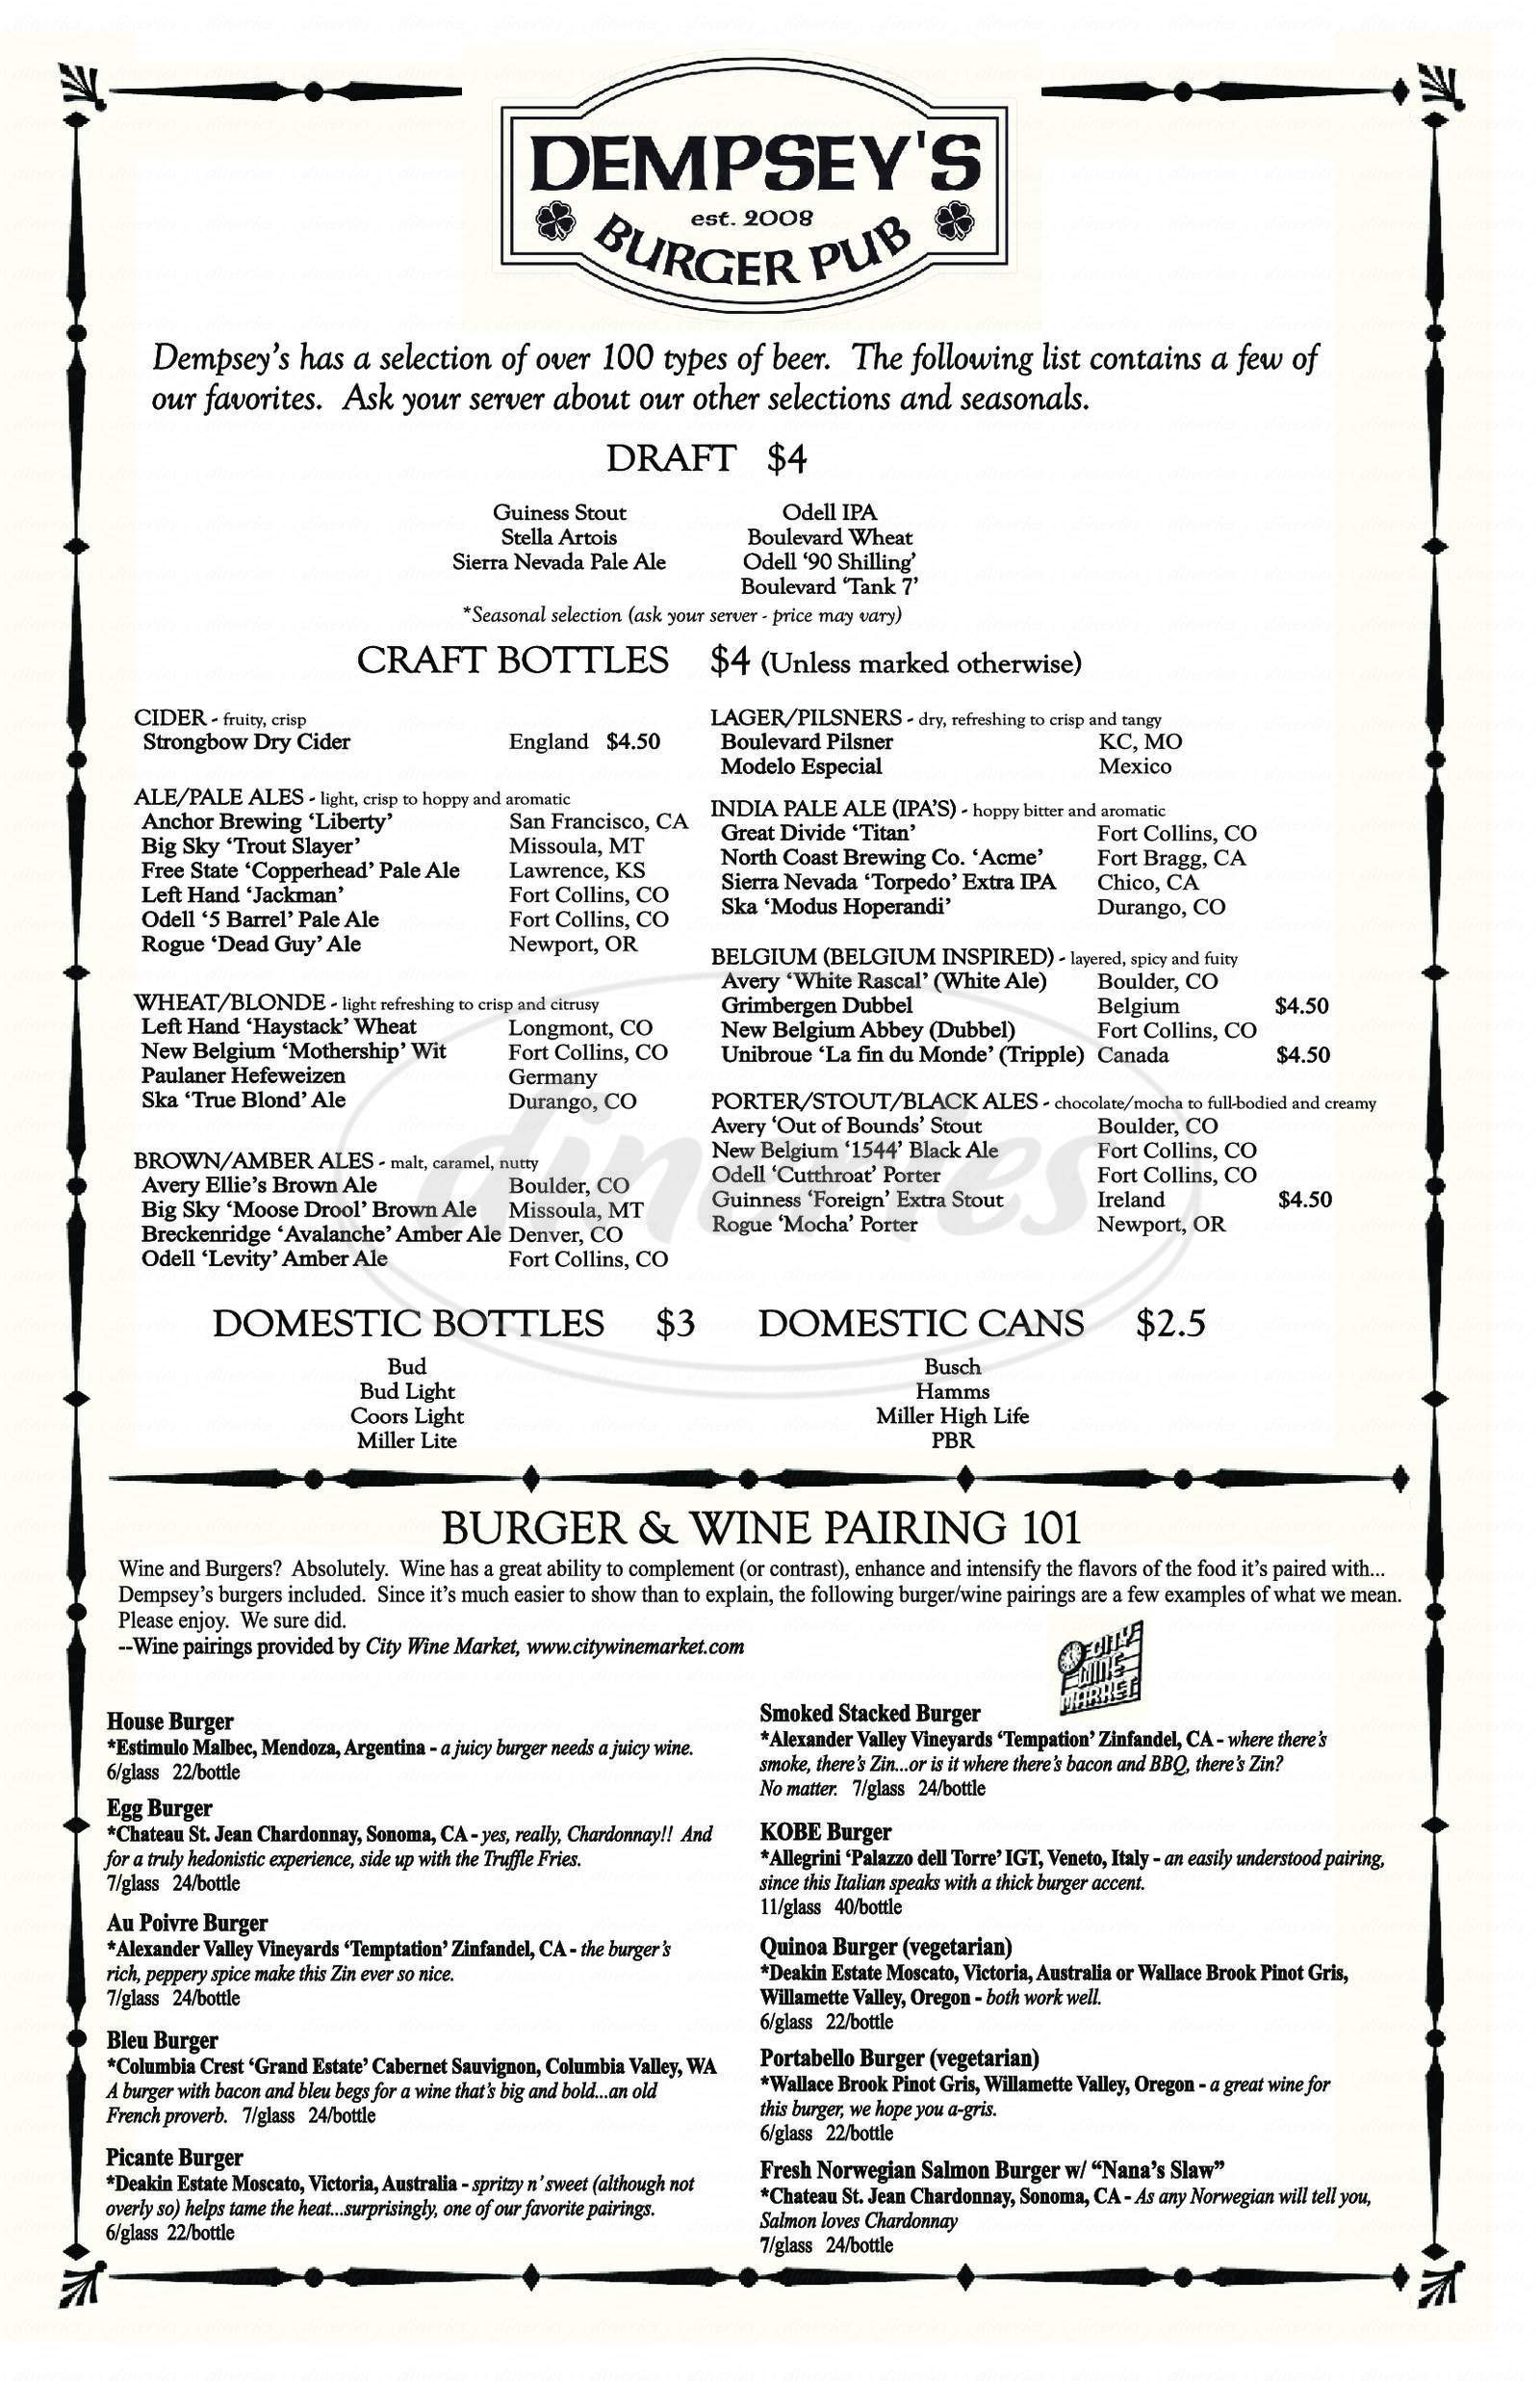 menu for Dempsey's Burger Pub